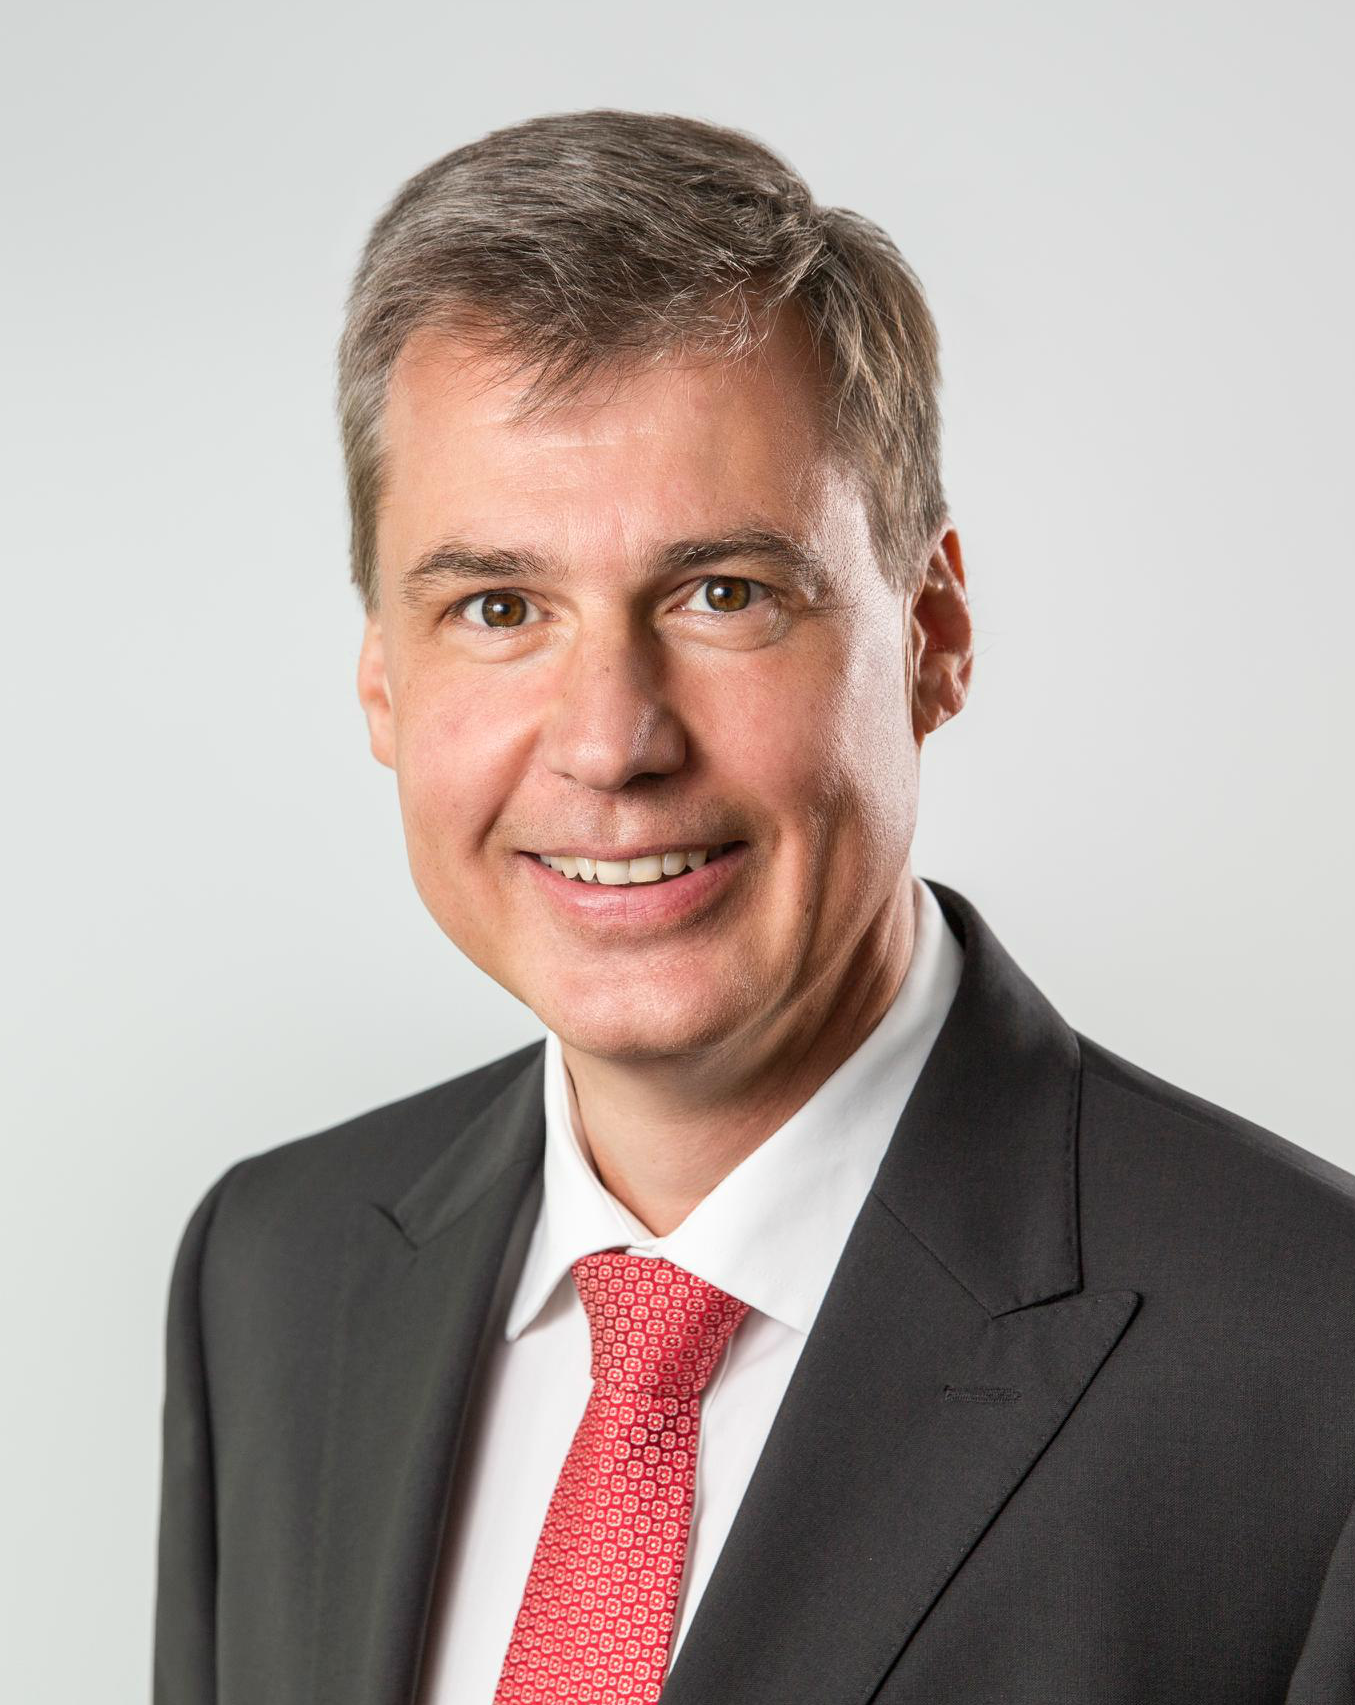 Manfred Arndt, Chief Executive Officer, voestalpine SIGNALING